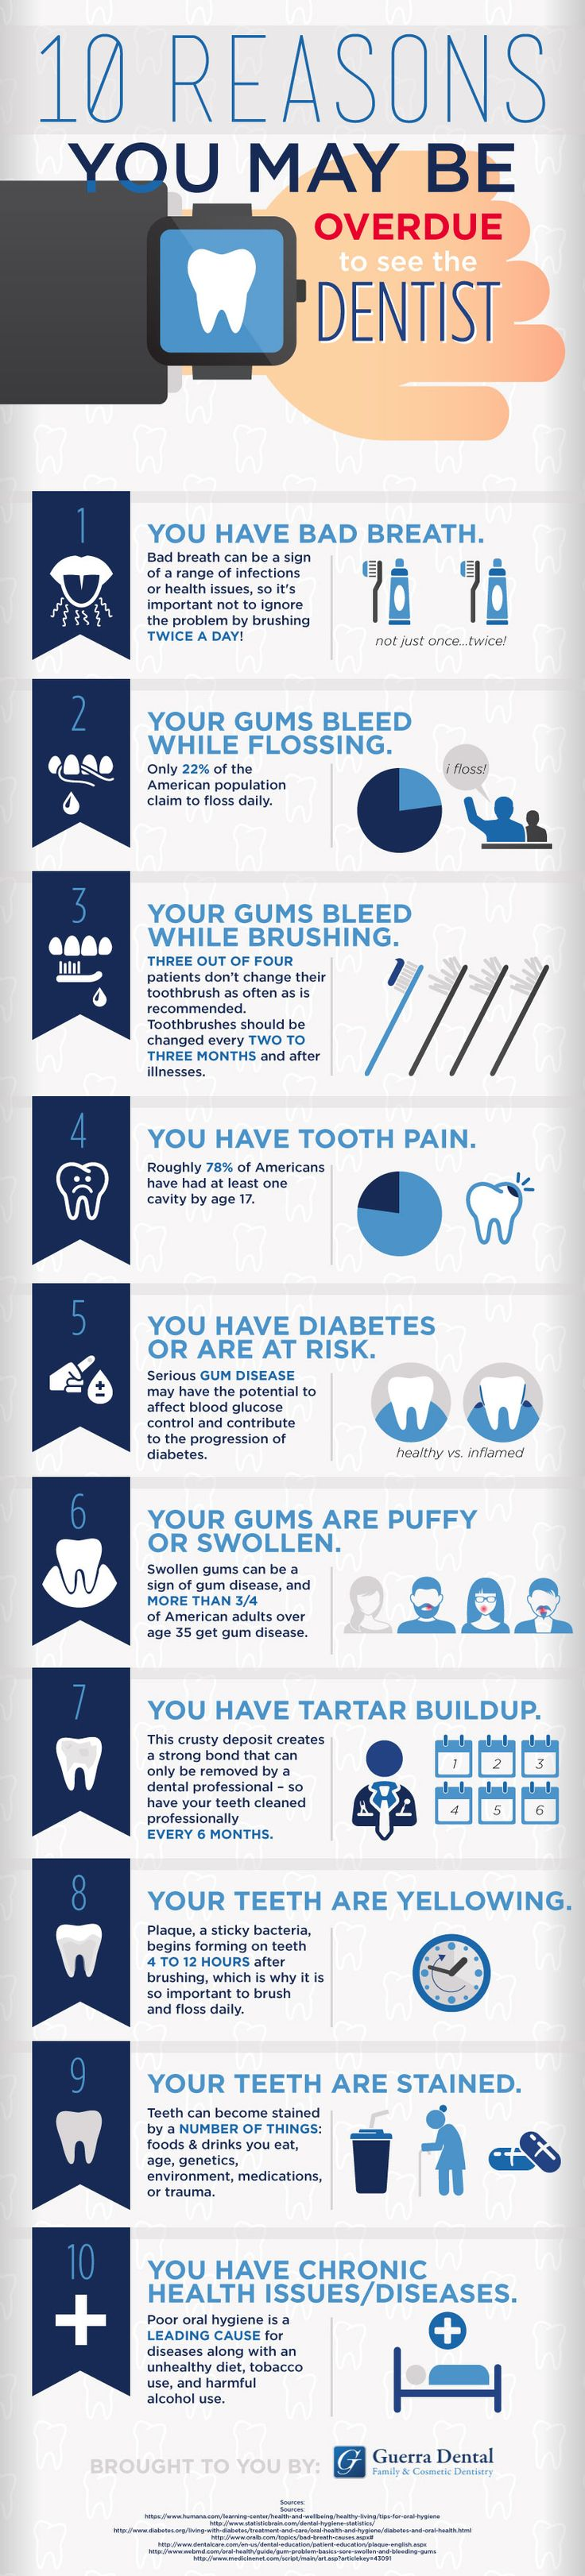 10 #reasons you may be #overdue to see the  #dentist http://www.guerradental.com/10-reasons-you-may-be-overdue-to-see-the-dentist/